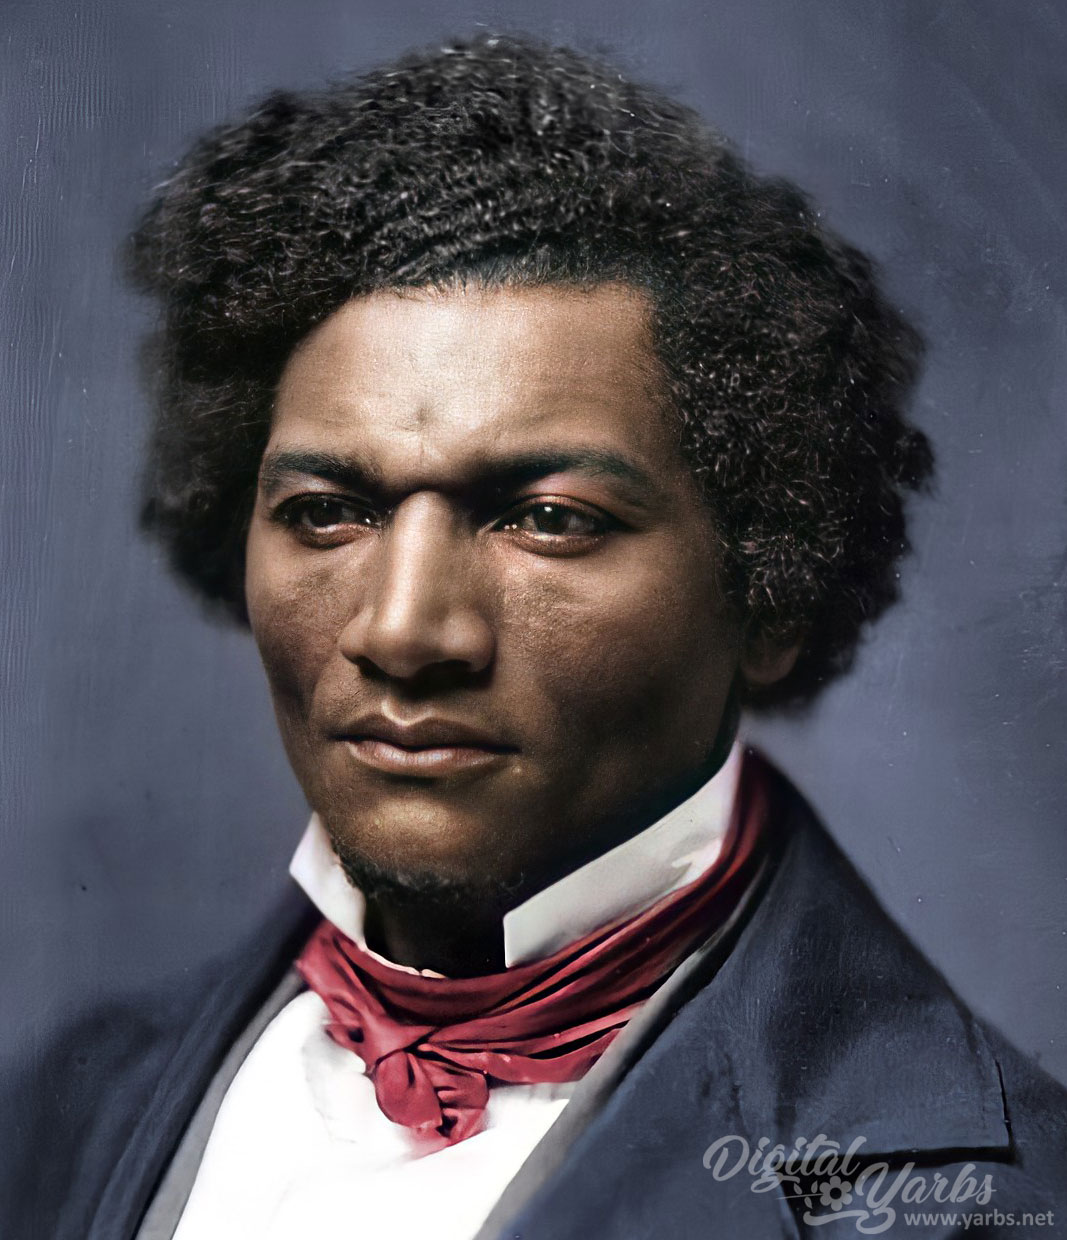 Close up view of Frederick Douglass Colorized and AI enhanced